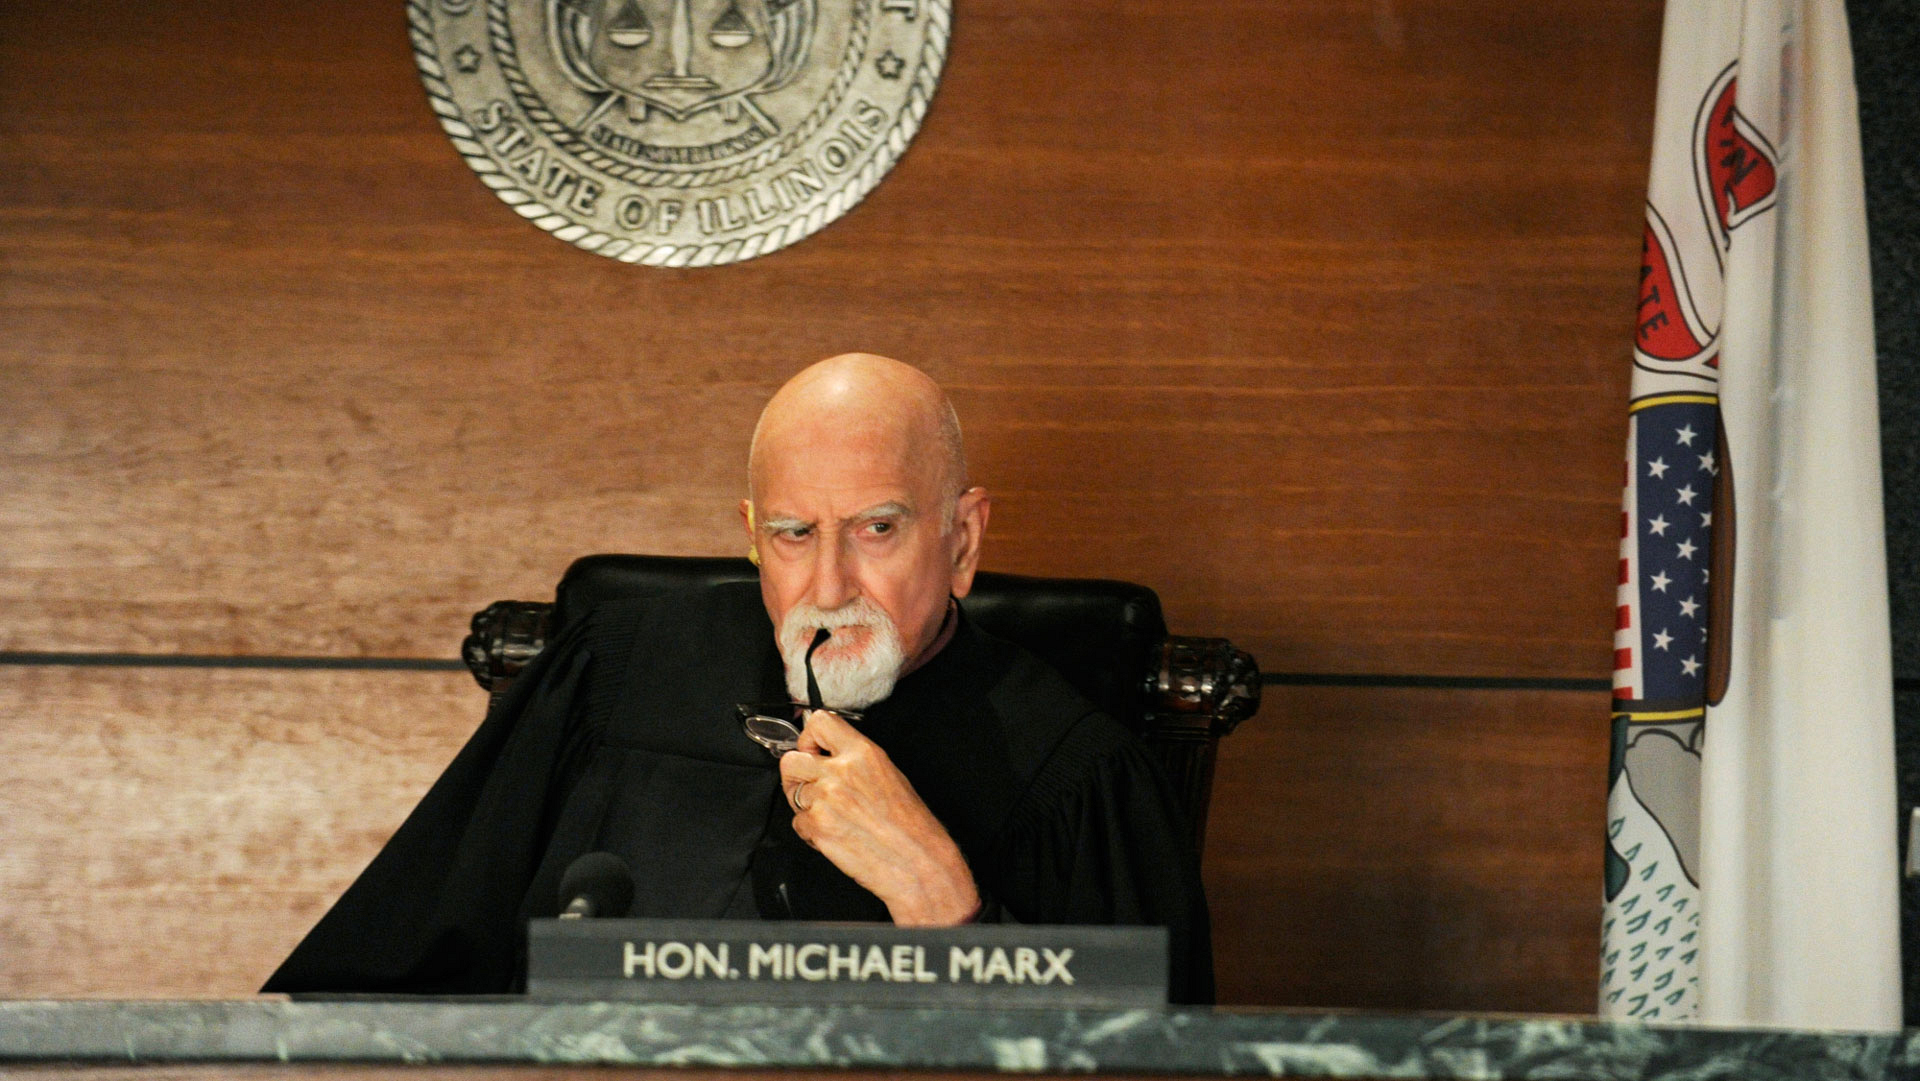 Judge Michael Marx (Dominic Chianese)